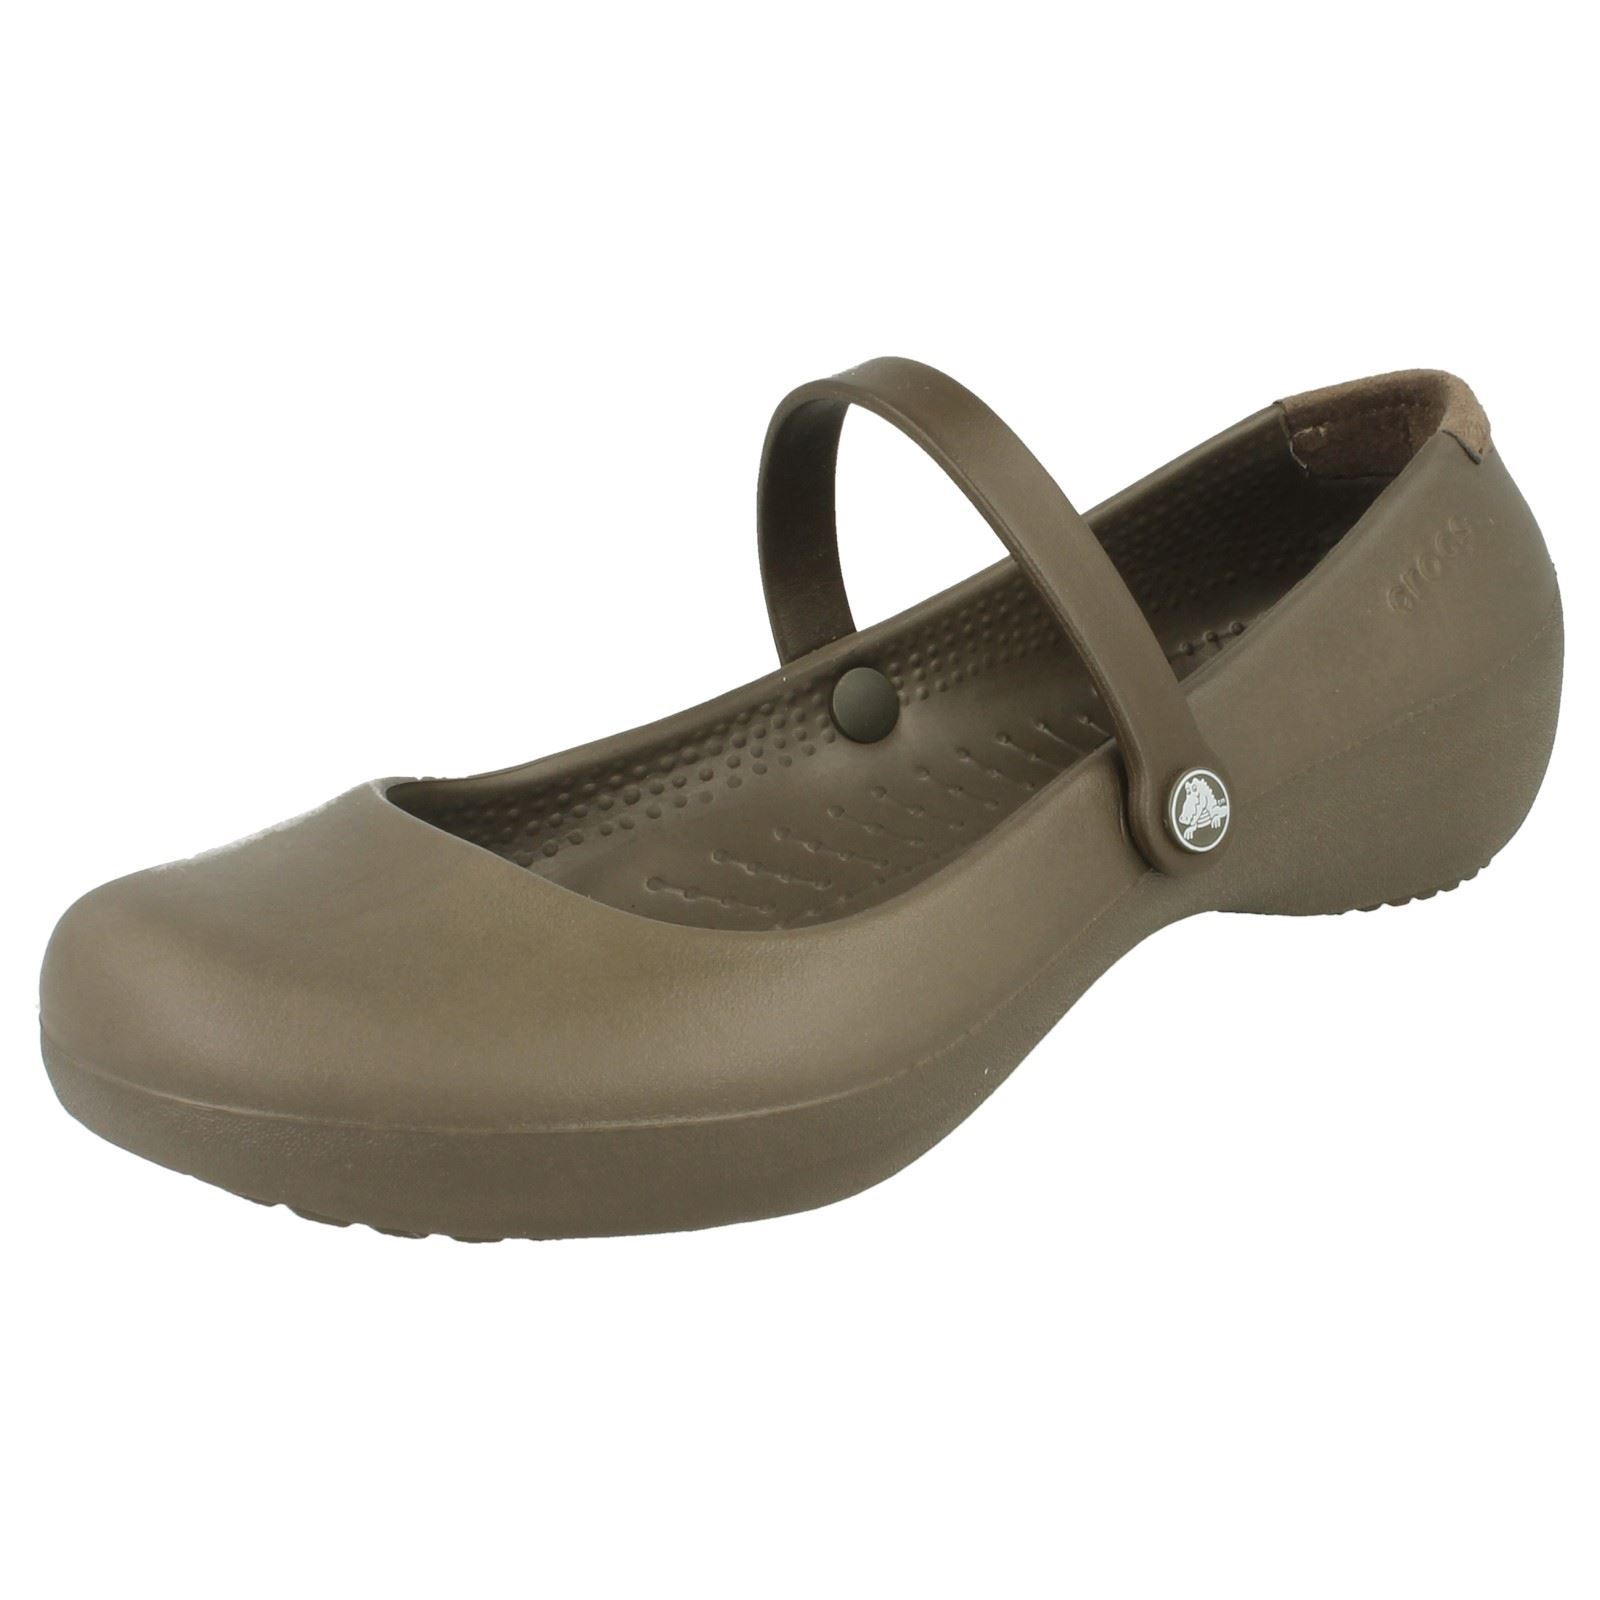 crocs casual rubber shoes labvel k ebay